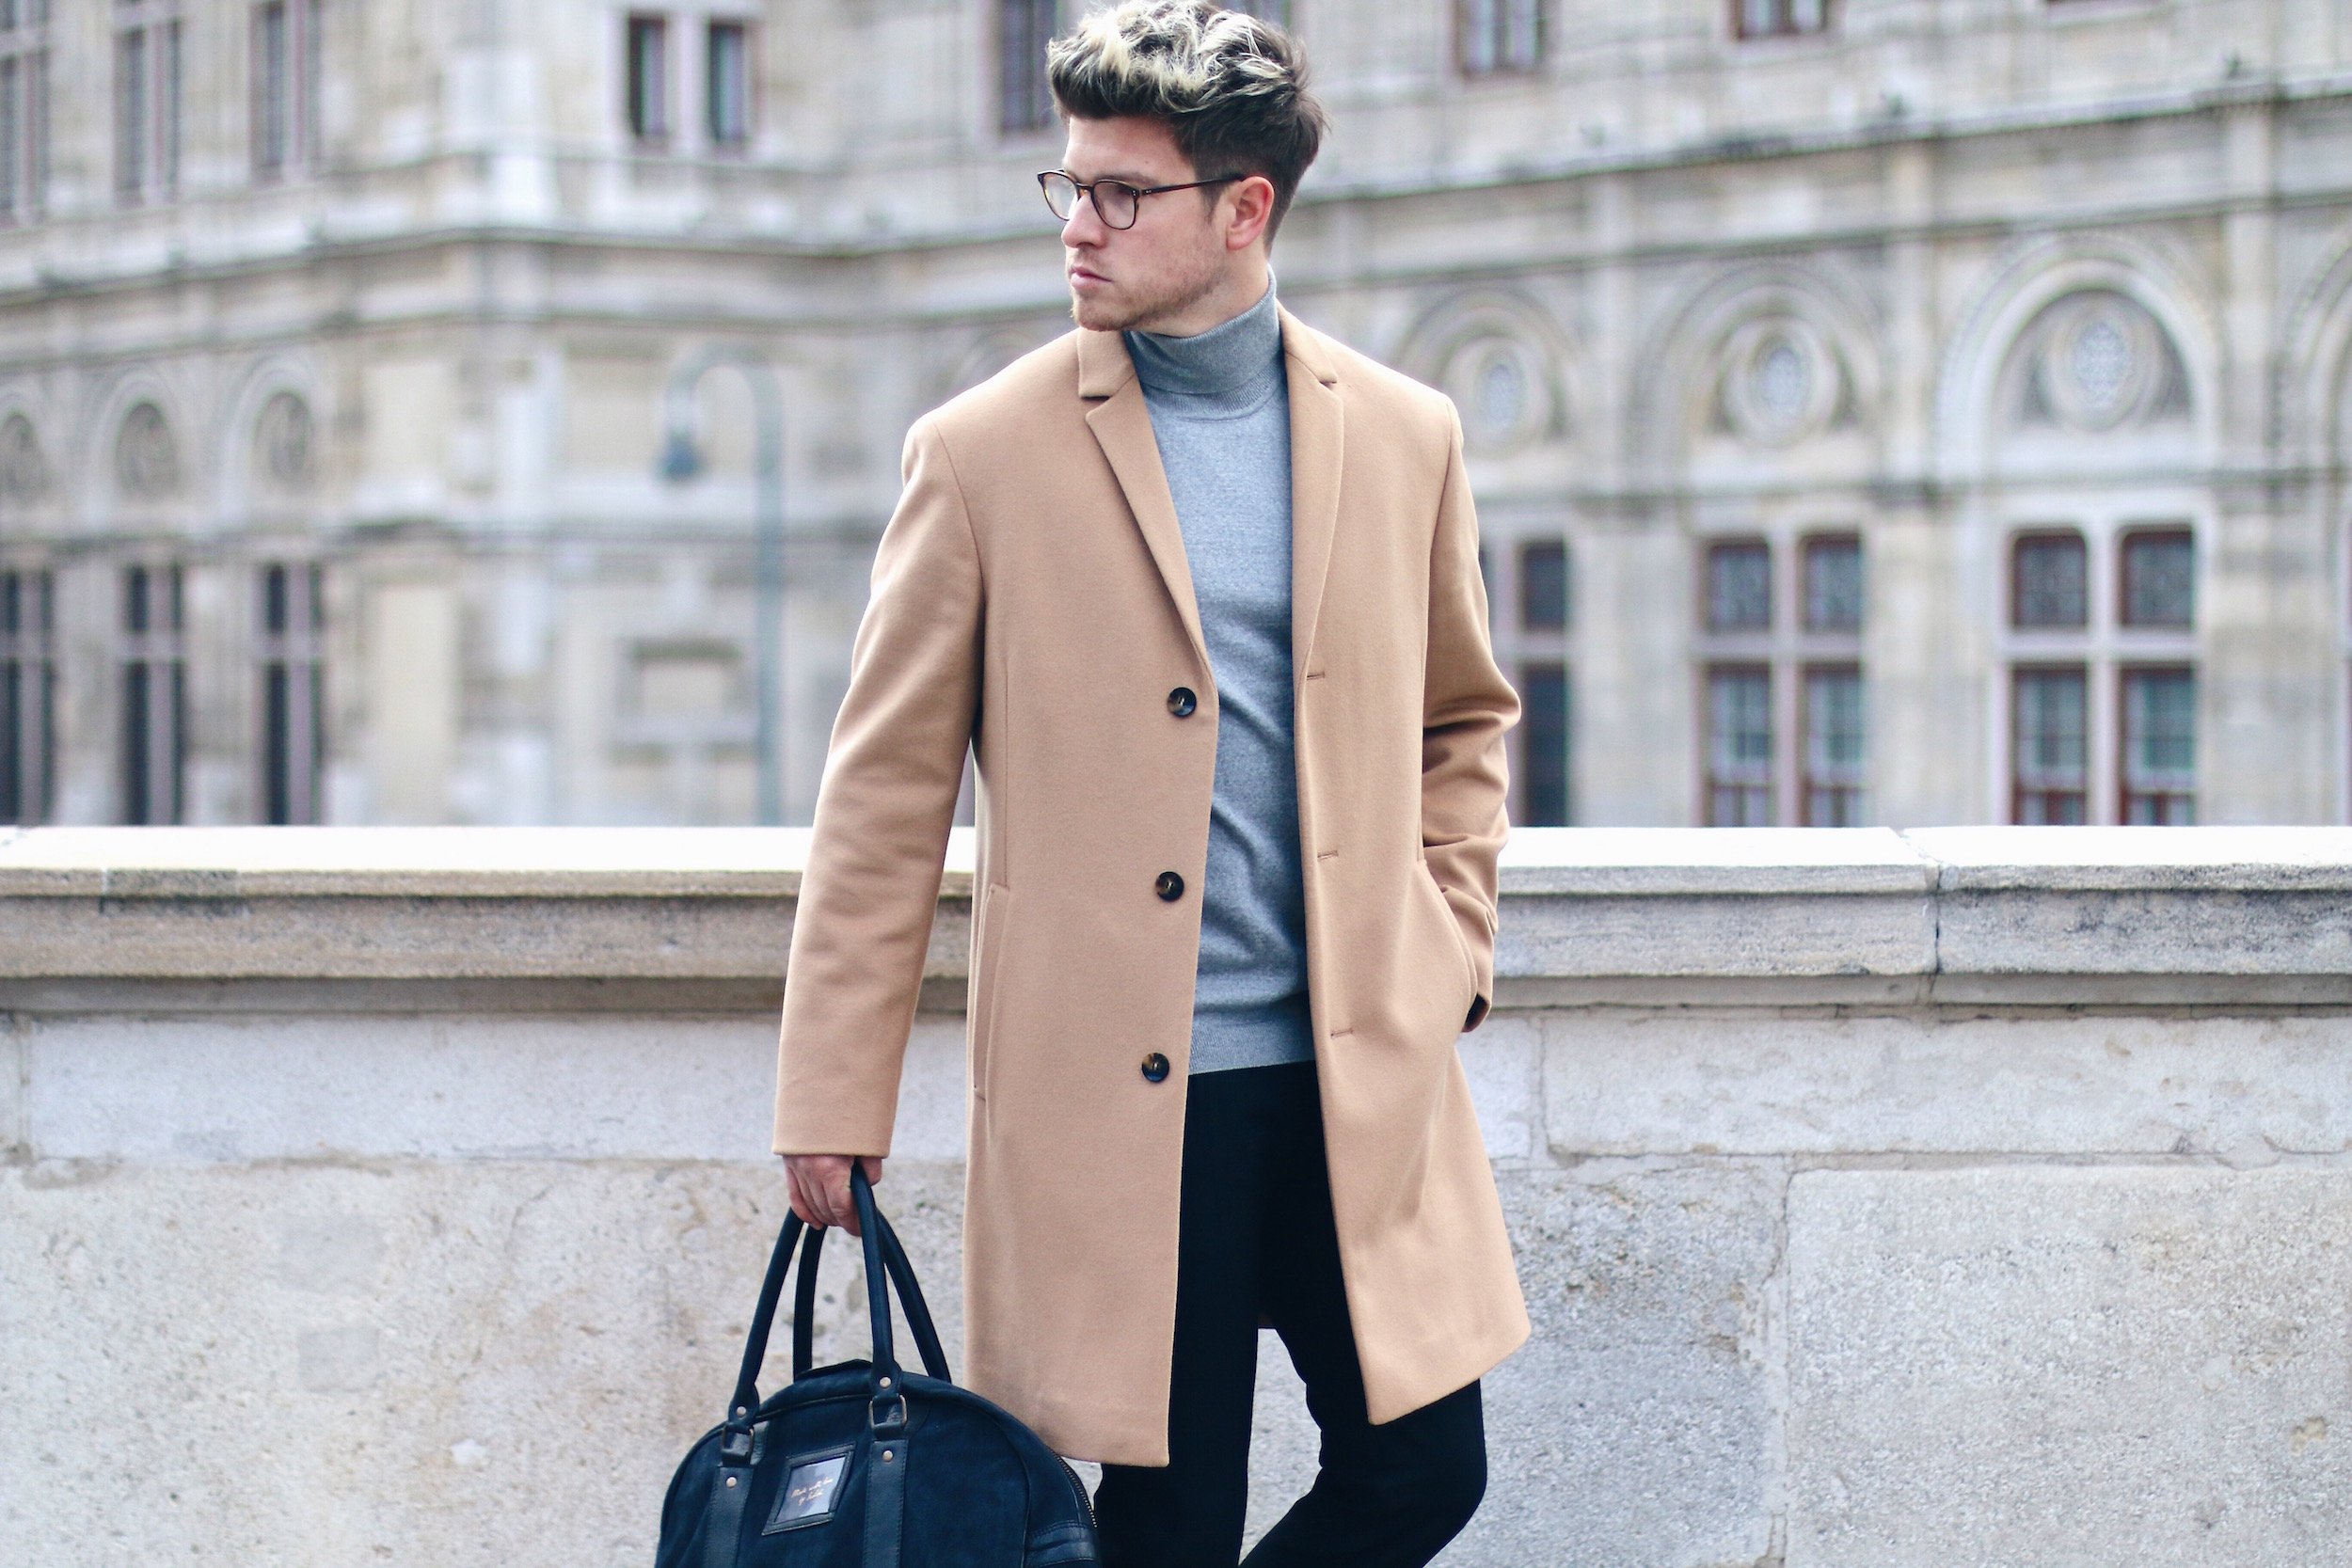 Peek & Cloppenburg Online Shop Launch Austria_Outfit Calvin Klein Camel Coat by Meanwhile in Awesometown_Austrian Mens Fashion and Lifestyle Blog 3